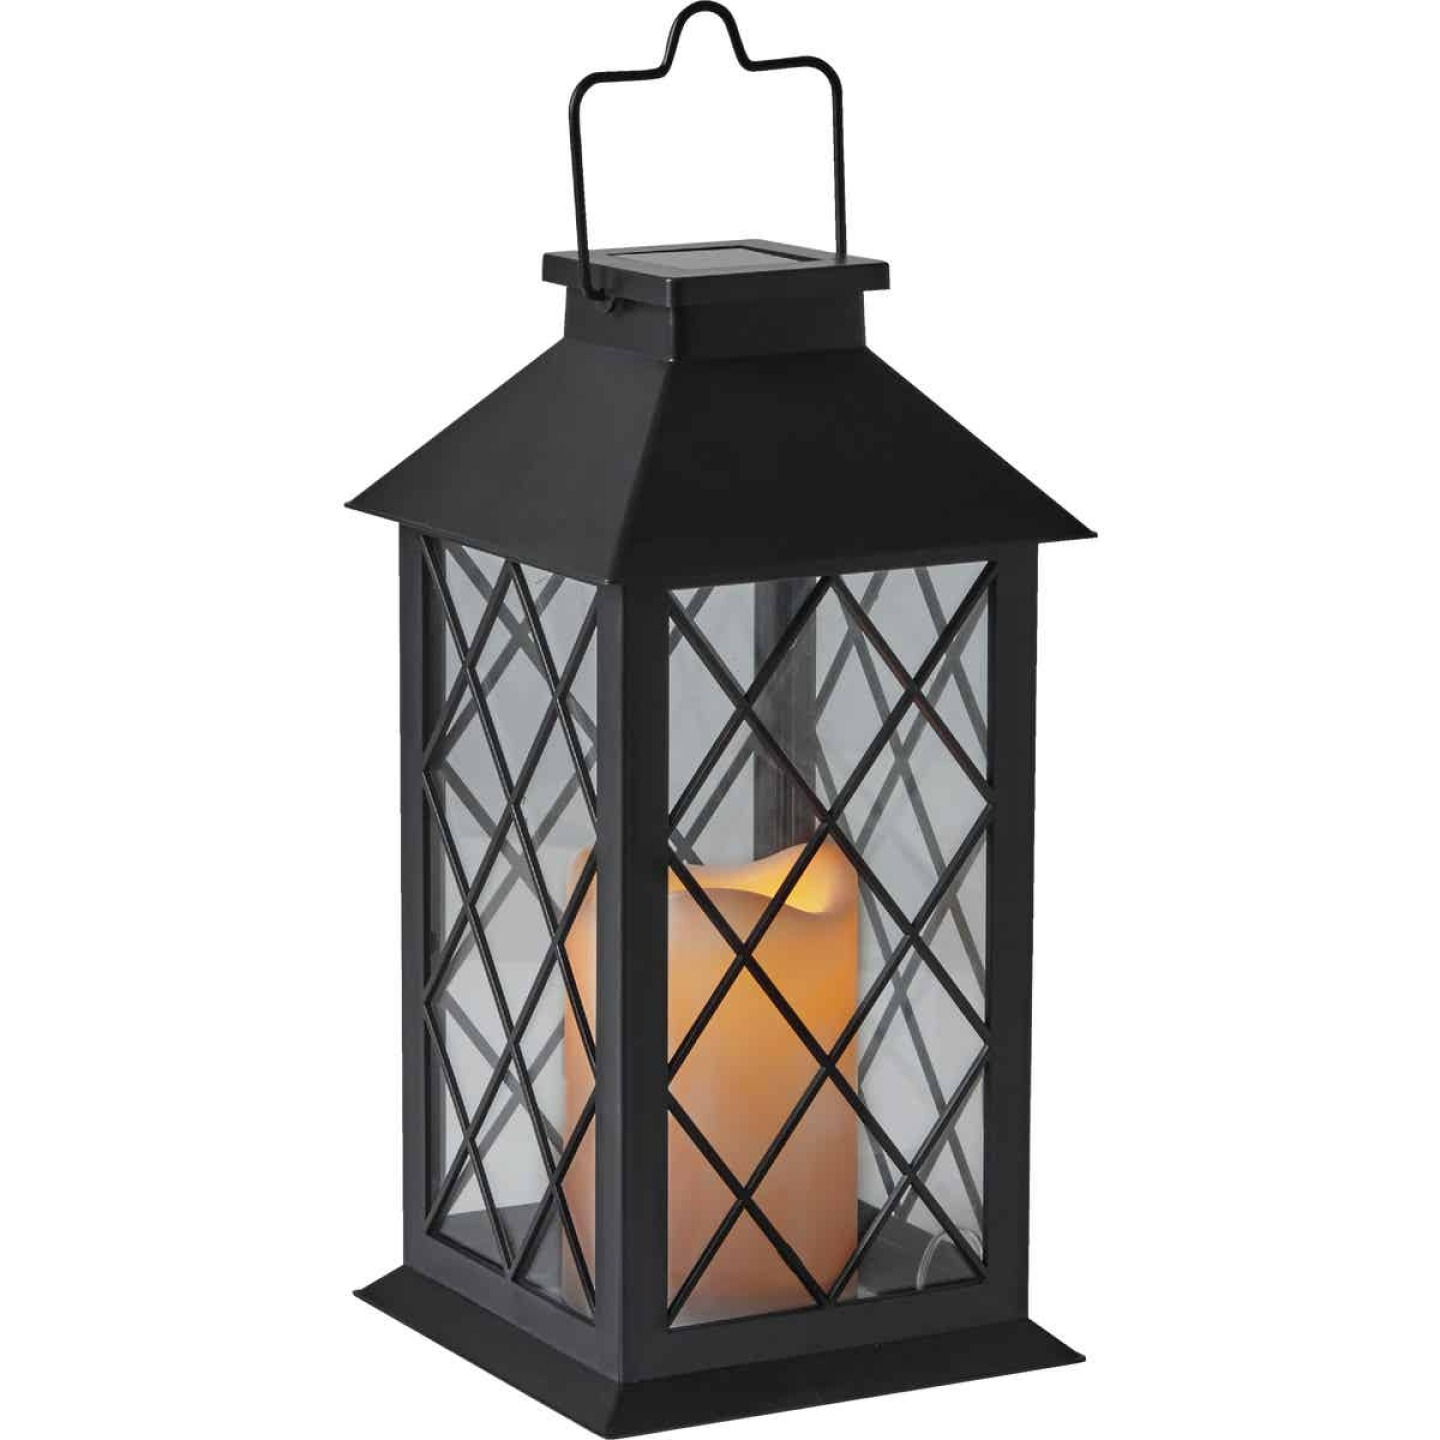 Gardman Cole and Bright 5.5 In. W. x 11 In. H. x 5.5 In. D. Amber Candle Light Plastic LED Solar Lantern Image 4